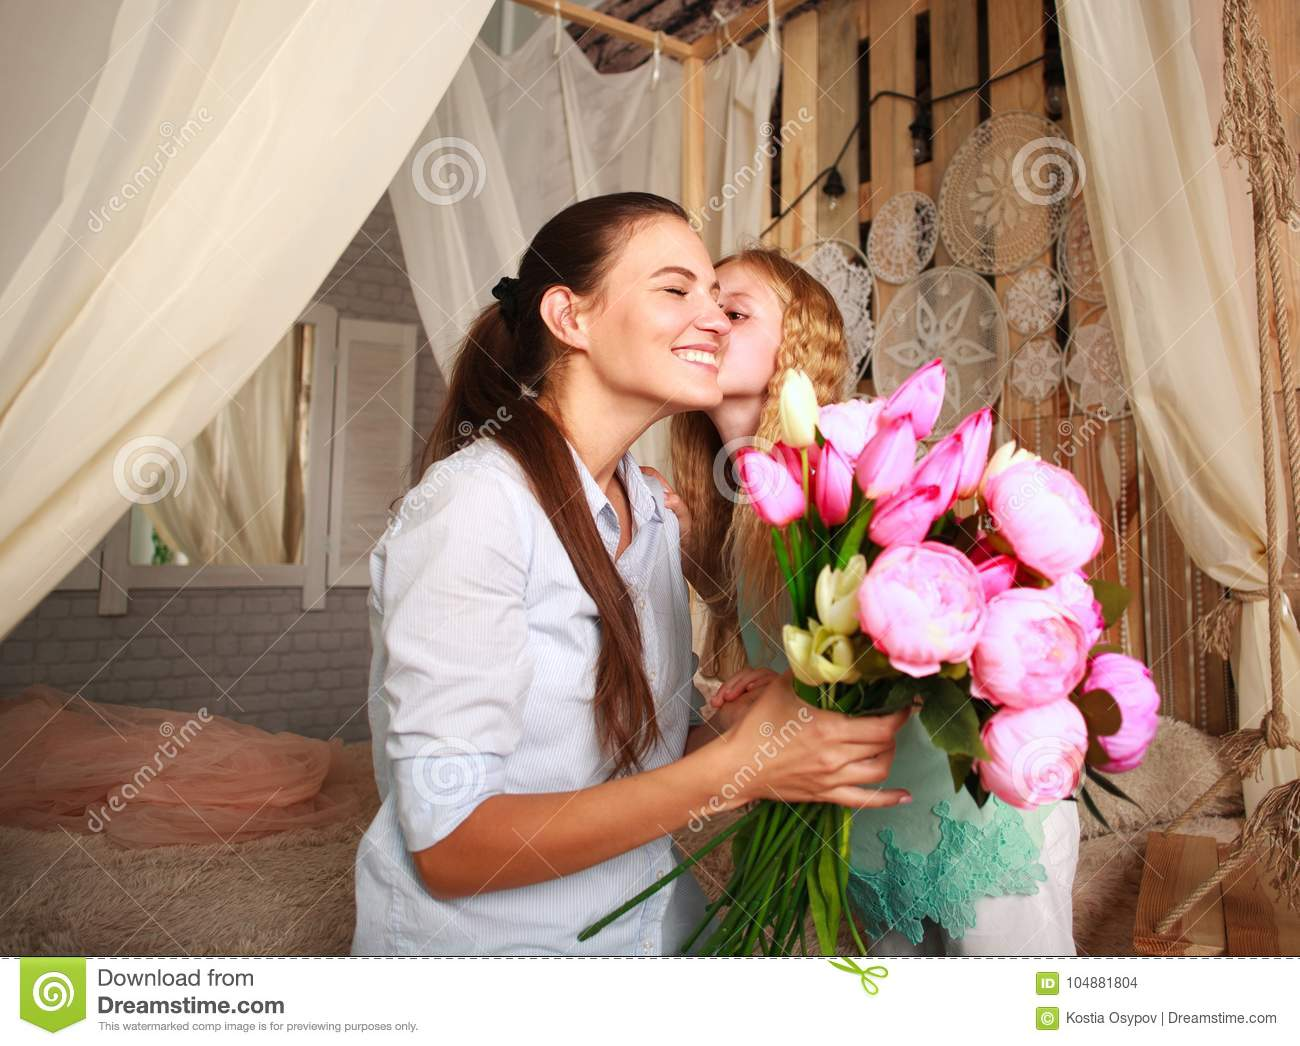 It's okay to give mother only flowers for your birthday 46